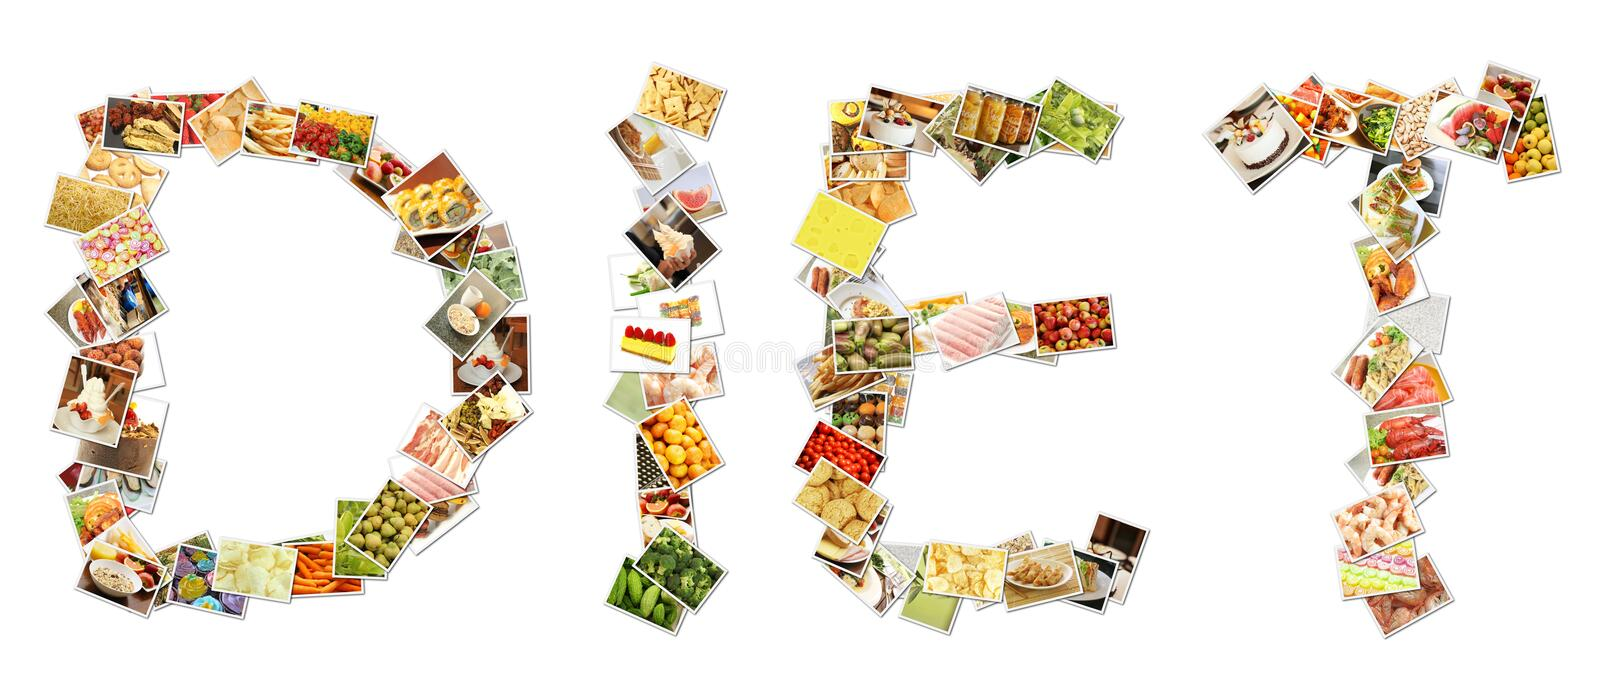 Healthy Diet Collage royalty free illustration